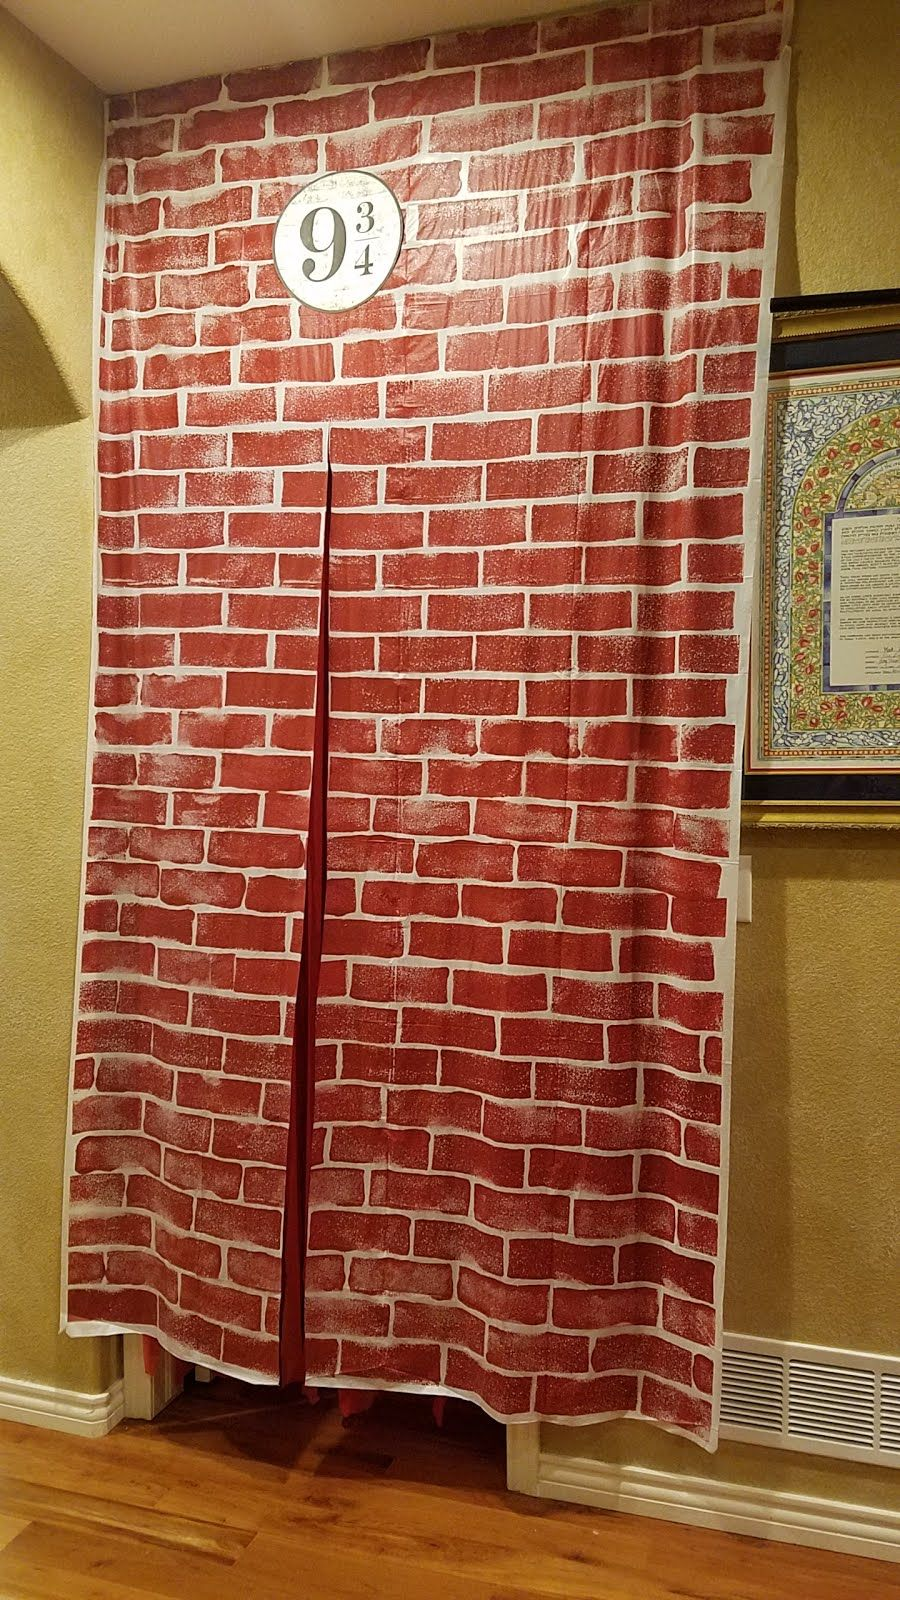 DIY Harry Potter Party Decor: Platform 9 3/4 made out of